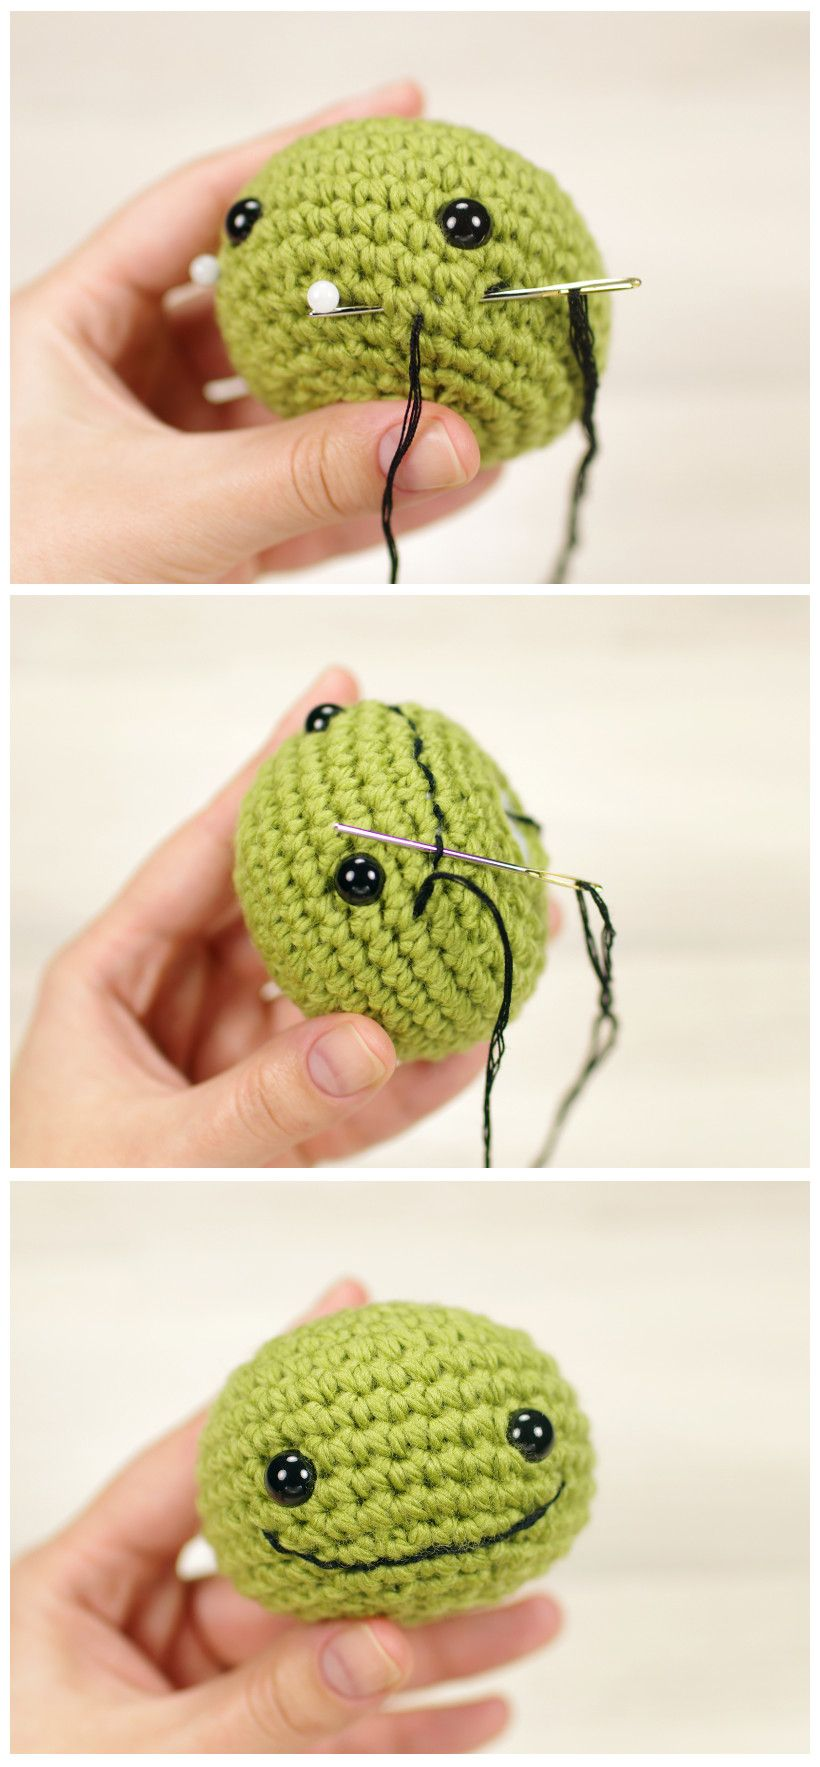 How To Embroider An Amigurumi Smile  Tutorial